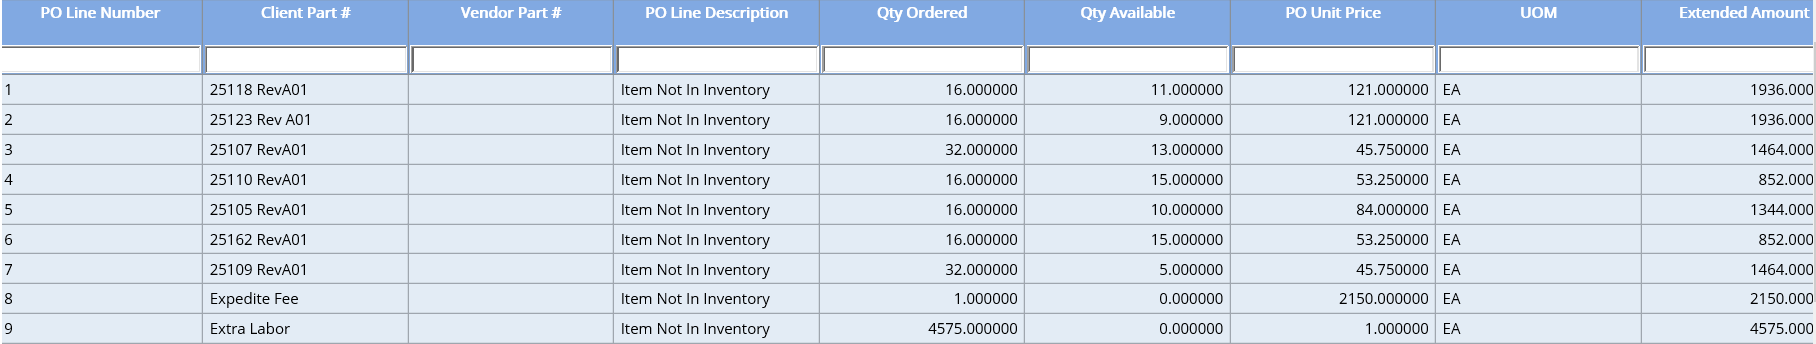 PURCHASE ORDER DETAILS